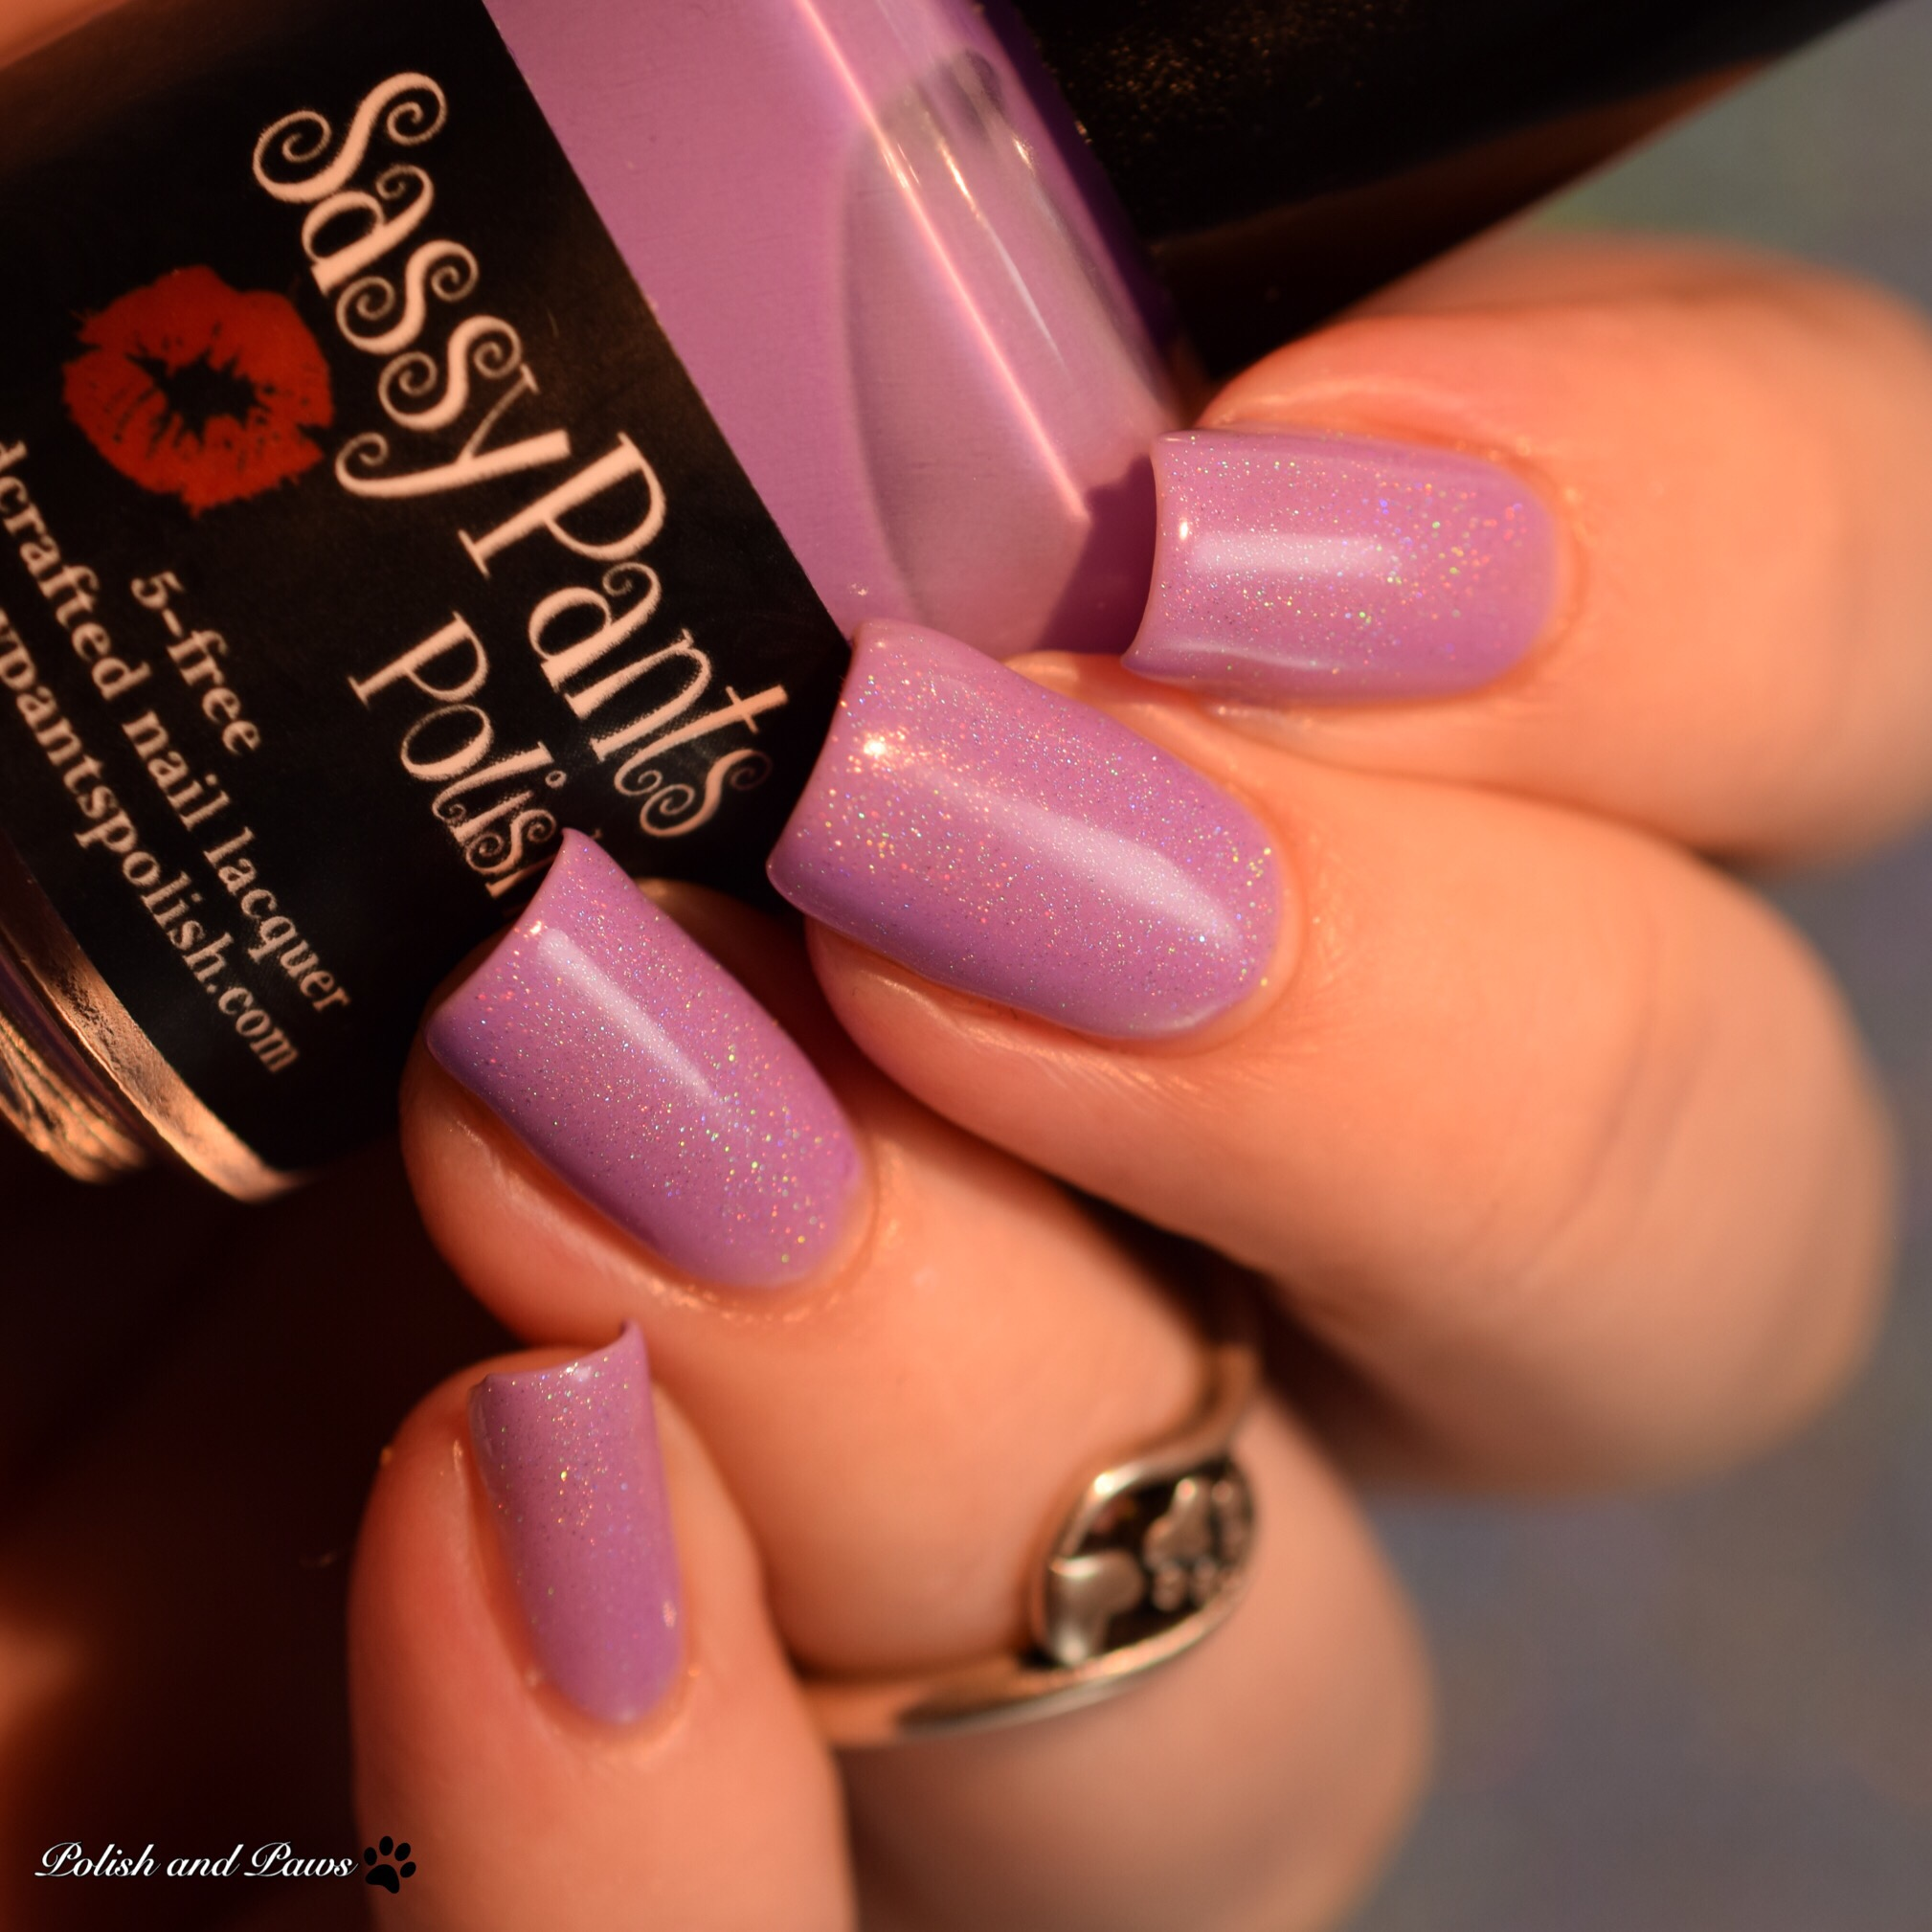 Sassy Pants Polish Love Always layered over Blow Me a Kiss